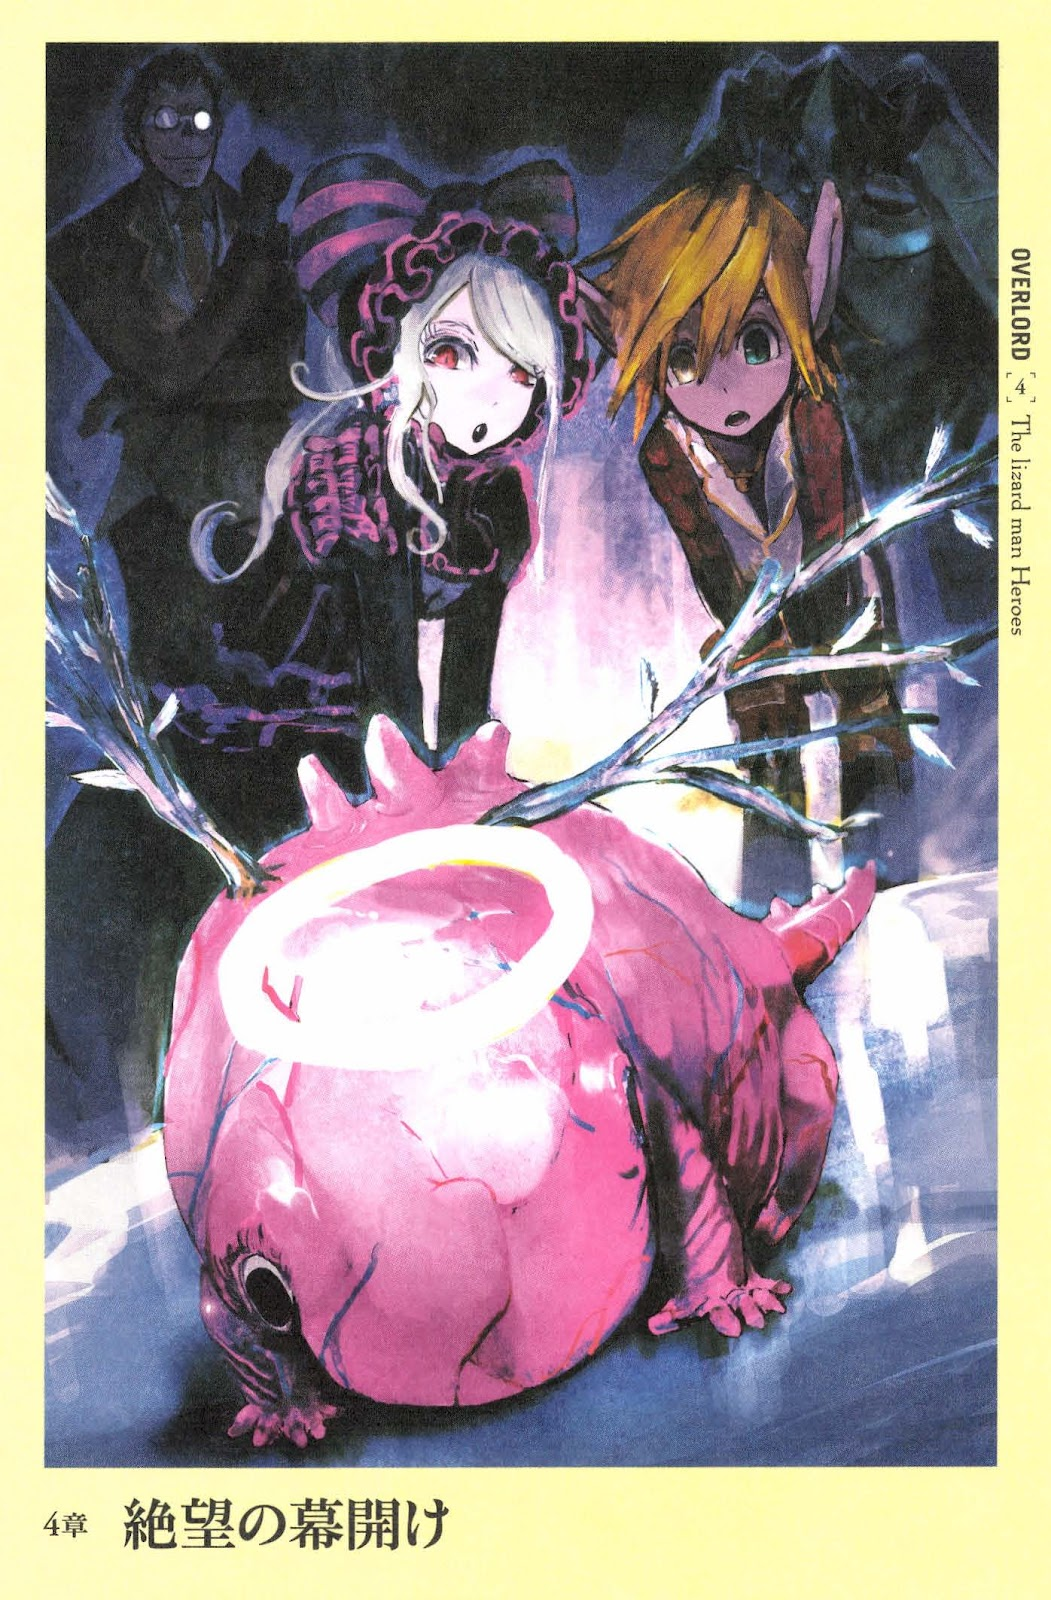 Skythewood translations: Overlord Volume 4 Chapter 4